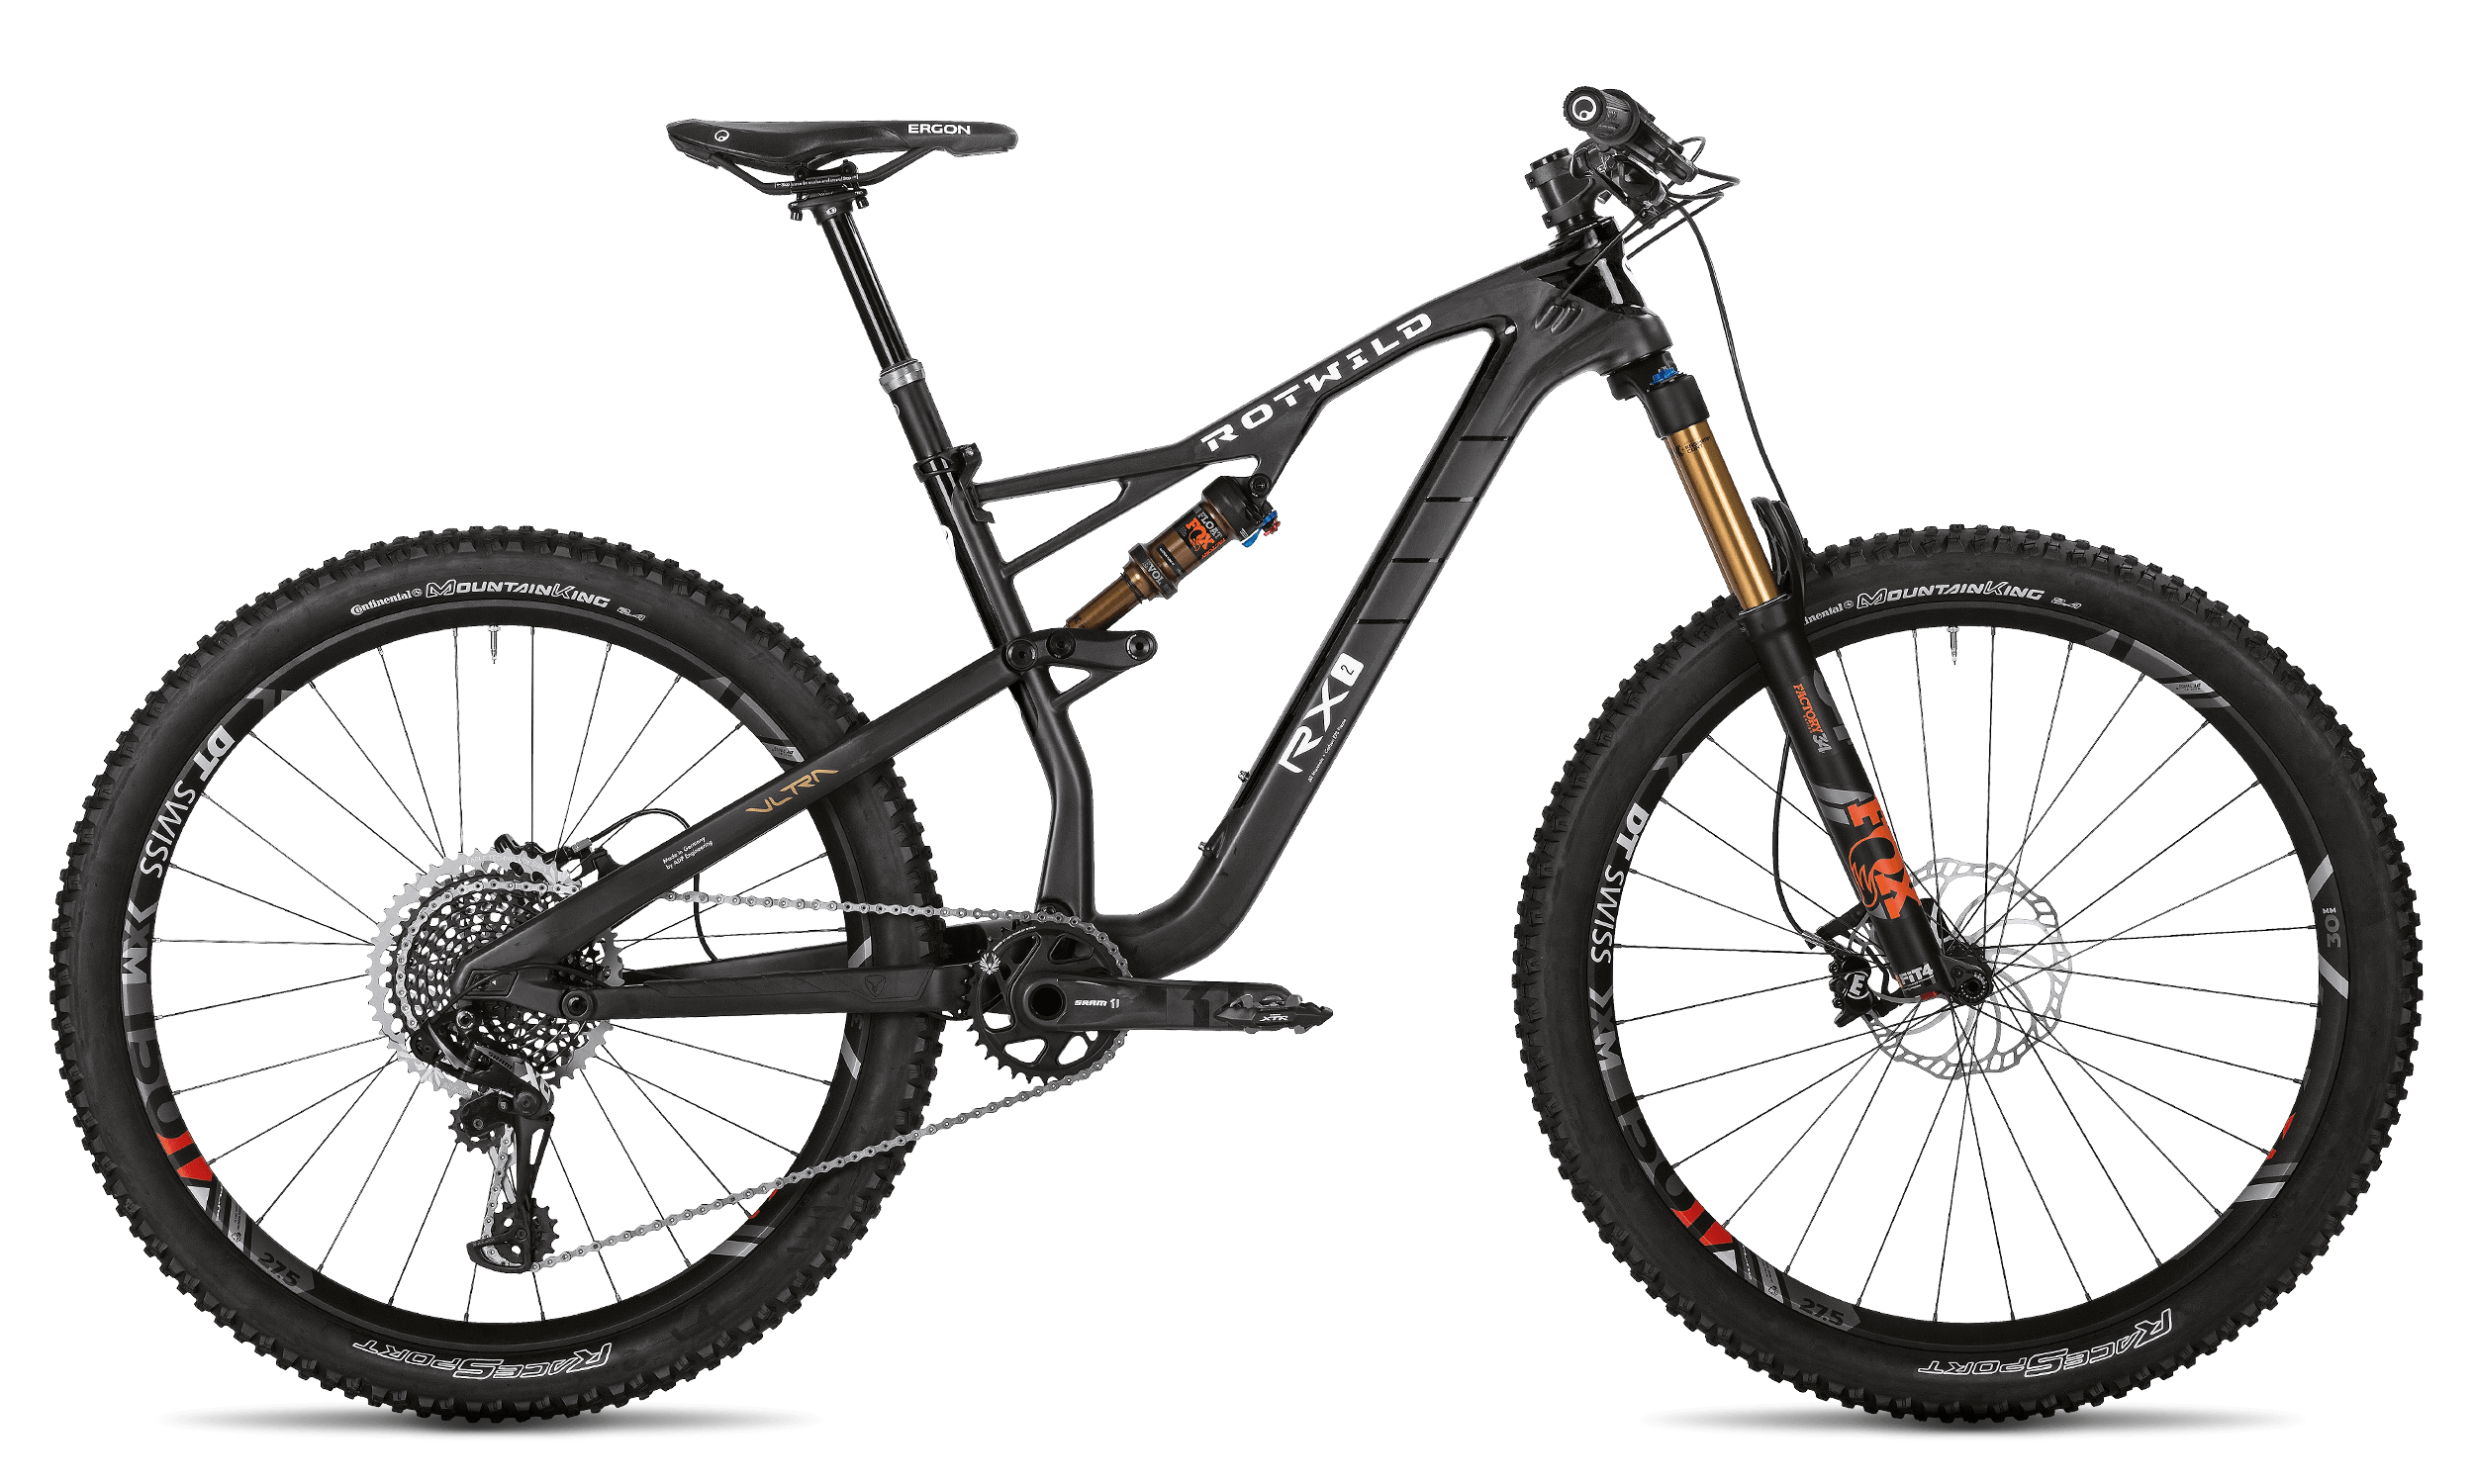 R.X2 TRAIL (27.5) ULTRA - CARBON - S - R.X2 TRAIL (27.5) ULTRA - CARBON - S